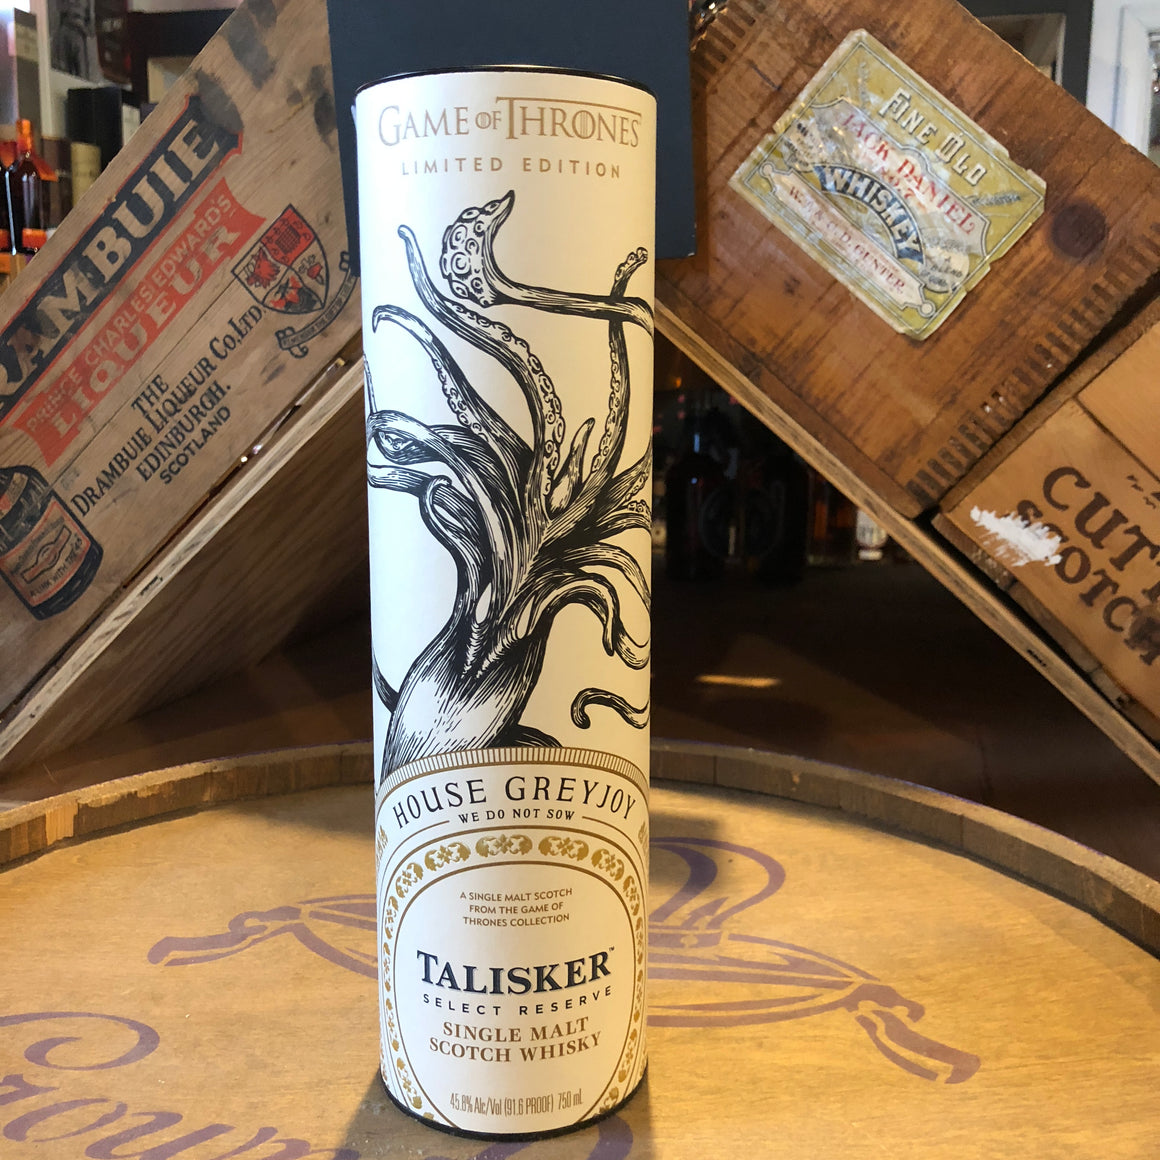 TALISKER SELECT RESERVE HOUSE GREYJOY GAME OF THRONES SINGLE MALT SCOTCH 750ML